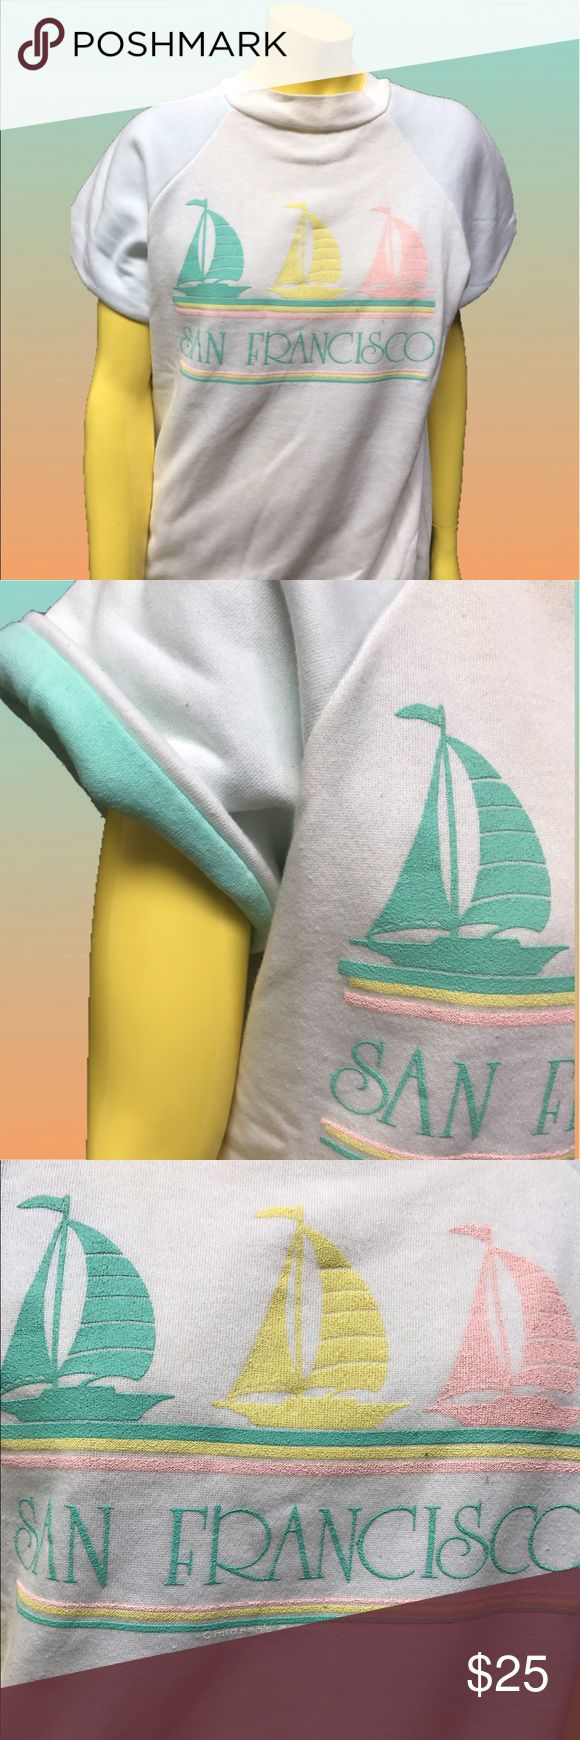 •🍡⚓️ Vtg 90s Pastel San Francisco Ship Tee ⚓️🌅 • Whatta dreamboat 💘🍬Sail away to la la land in this cuddly Cali tourist tee! 🌴🌥✨ Clean as can be ✔️✨ . • M • 50% Polyester . 50% Cotton • Made in U.S.A. 🇺🇸 •  . • Measurements upon request 💬📏✔️✨• . . . • * • . • ✶ • . • * • .  #vintage #vtg #retro #1990 #1990s #90 #90s #pastel #aesthetic #pink #yellow #teal #dream #boat #sail #ship #nautical #ocean #fairykei #kawaii #puffy #paint #plush #soft #mom #granny #cali #sanfrancisco #tourist…